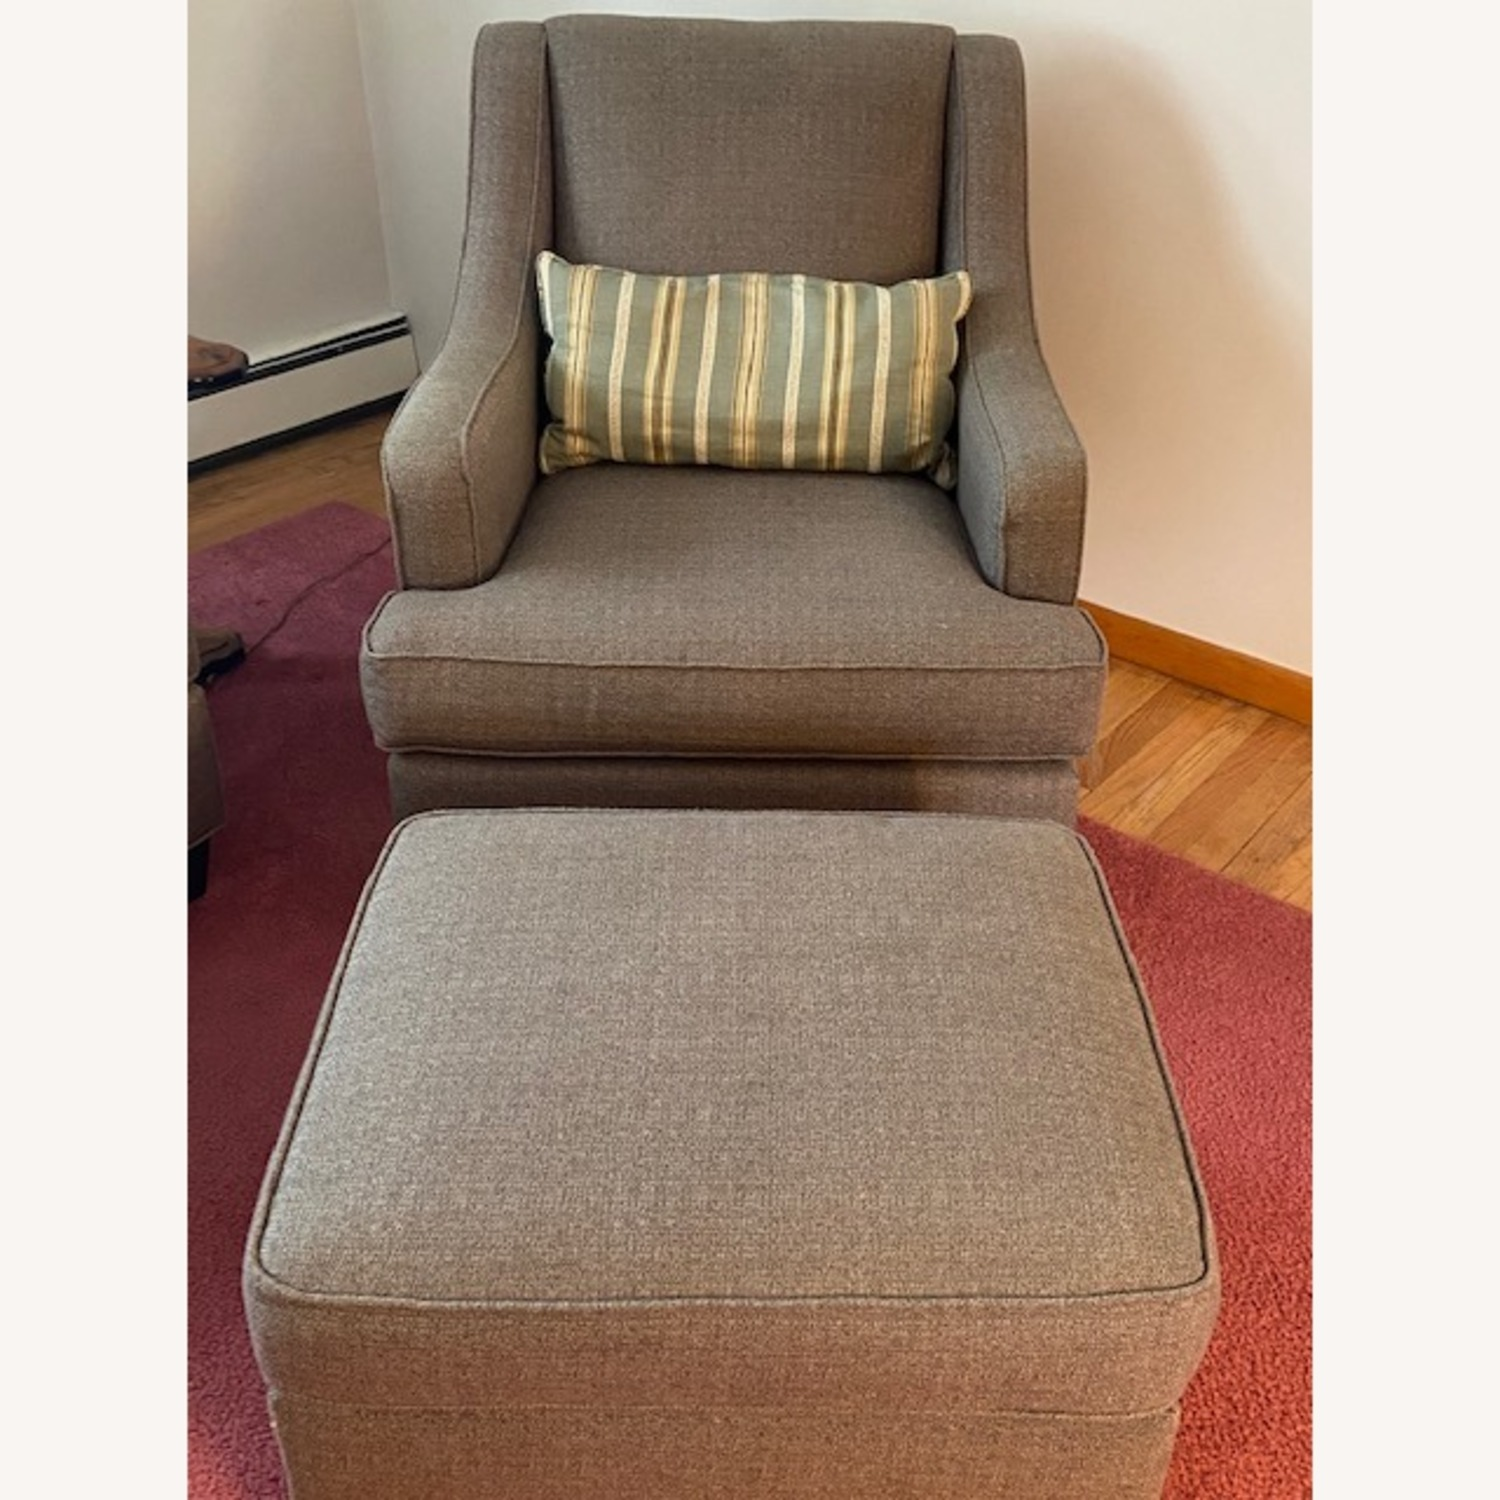 Basset Gibson Chair with Matching Ottoman - image-1